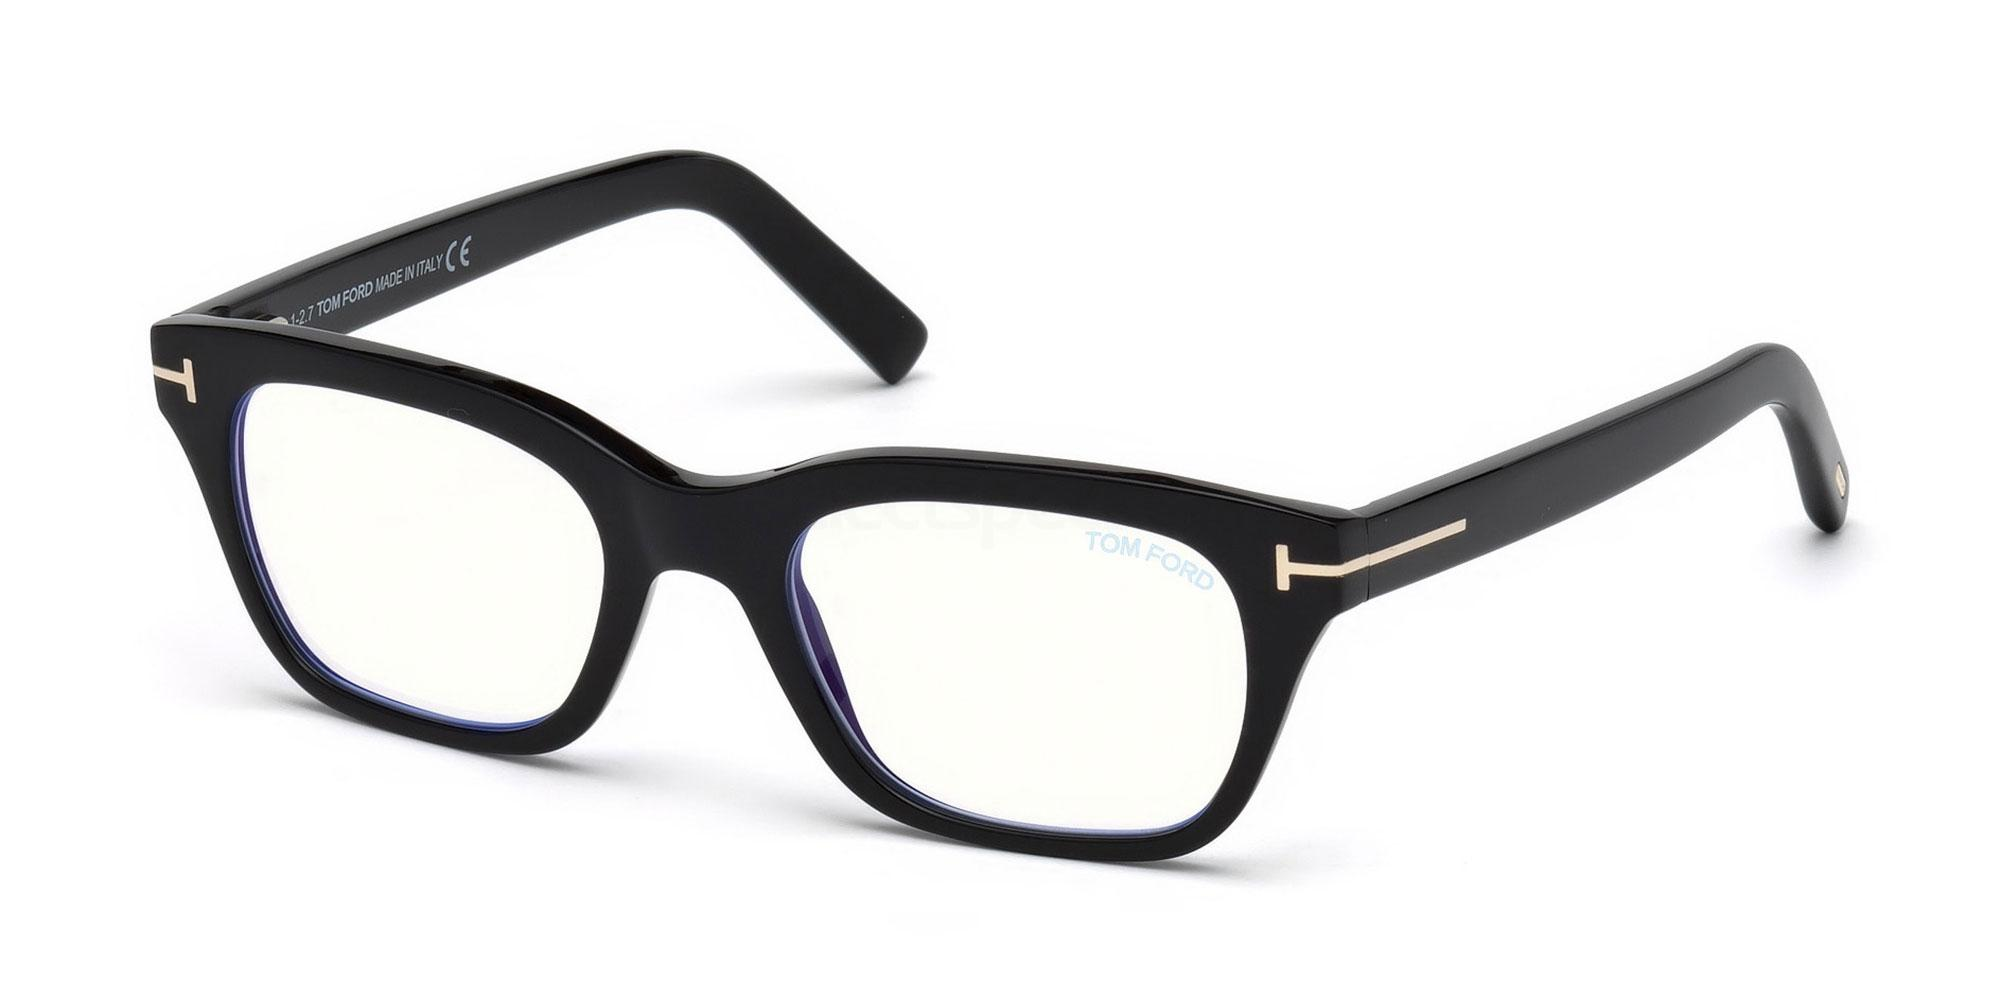 001 FT5536-B Glasses, Tom Ford